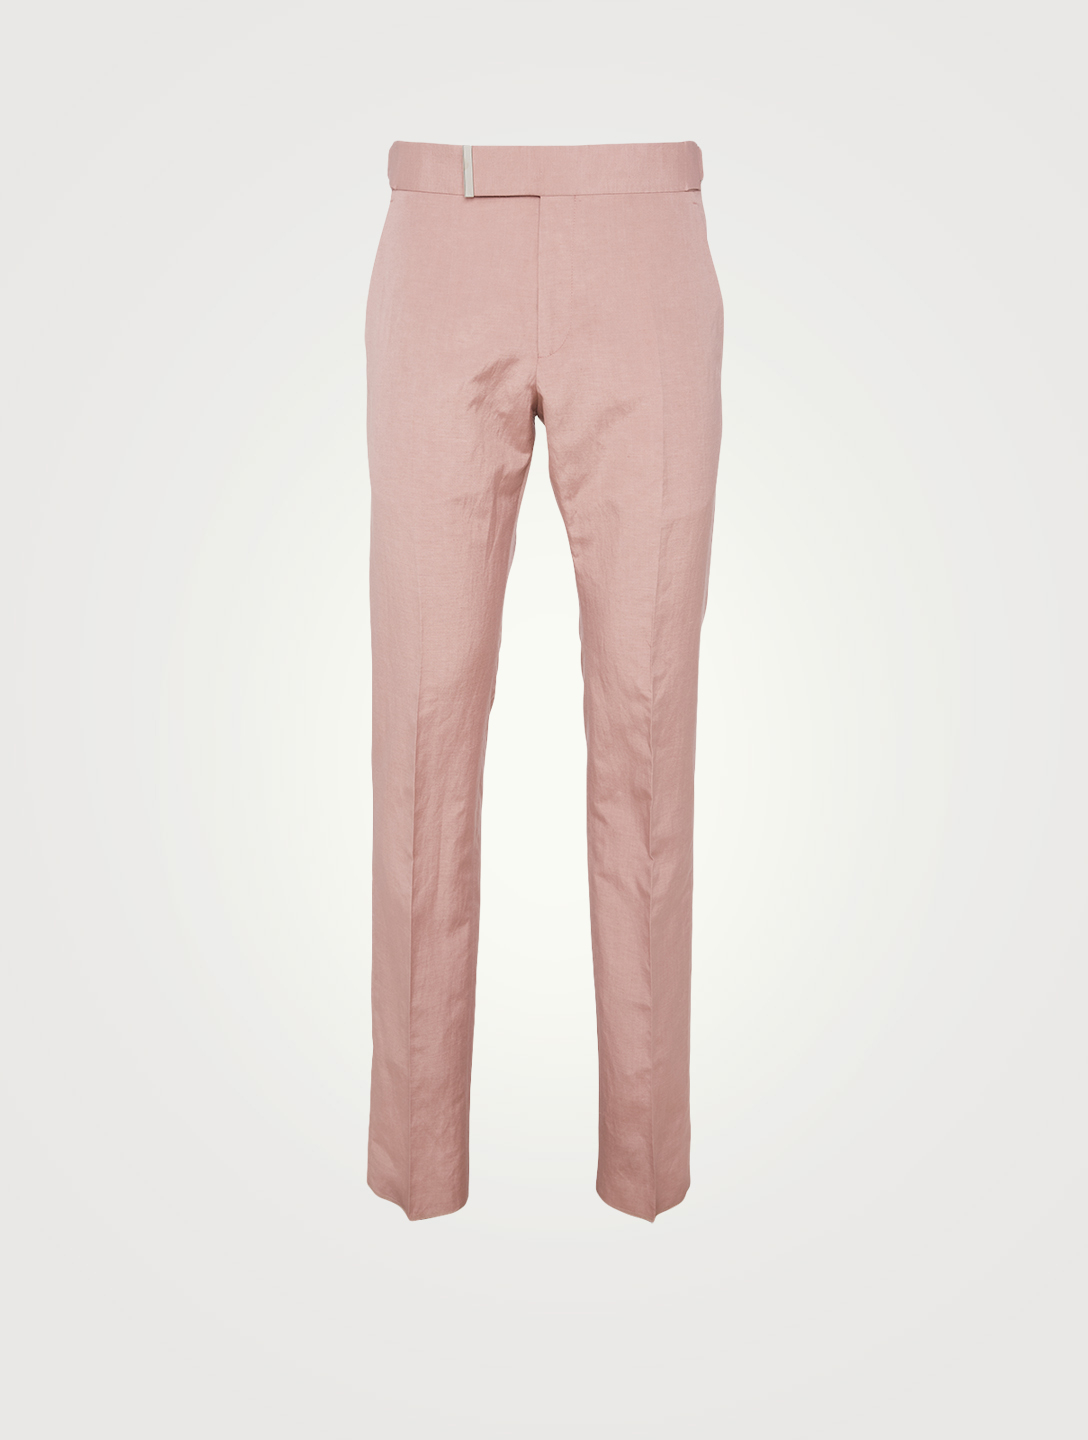 TOM FORD Atticus Silk And Linen Day Suit Pants Men's Pink